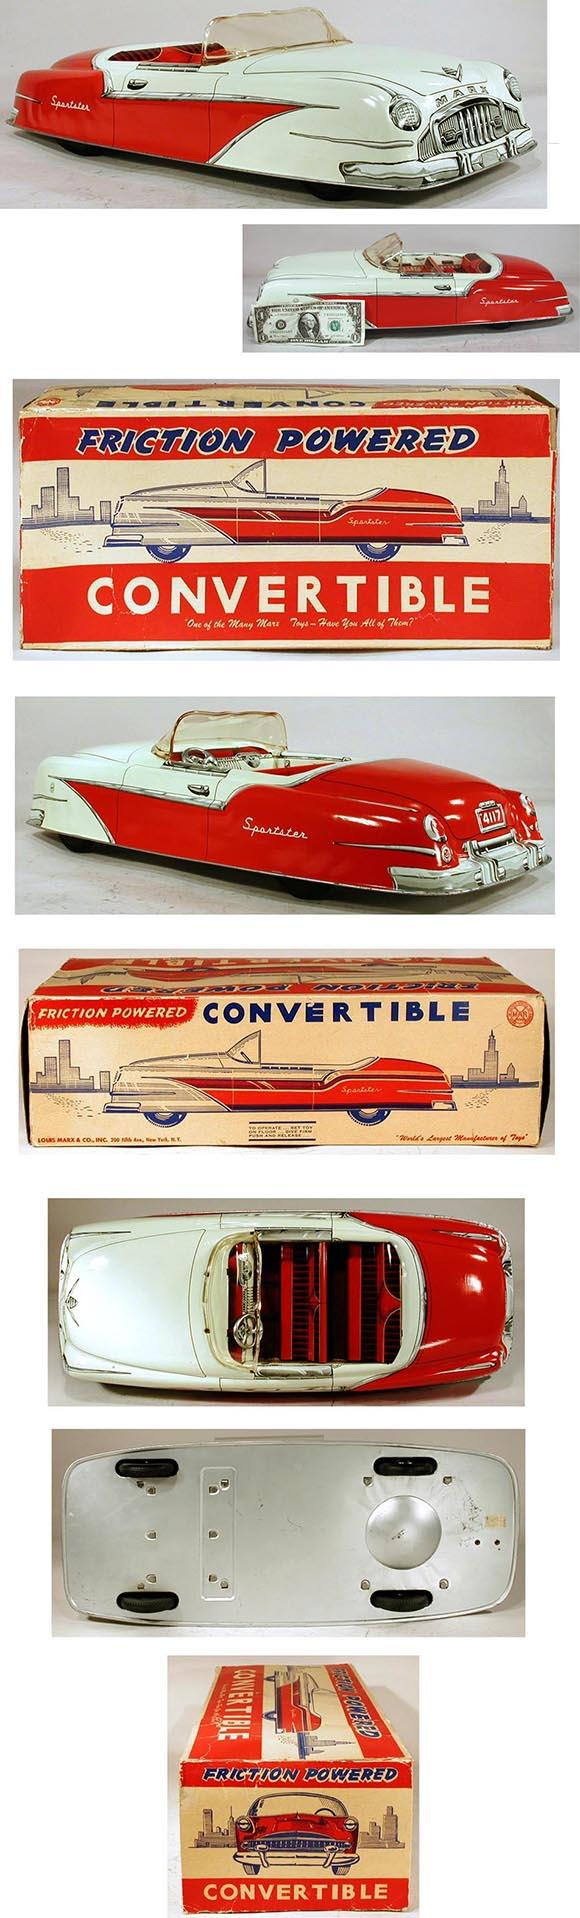 1955 Marx, Friction Powered Sportster Convertible in Original Box